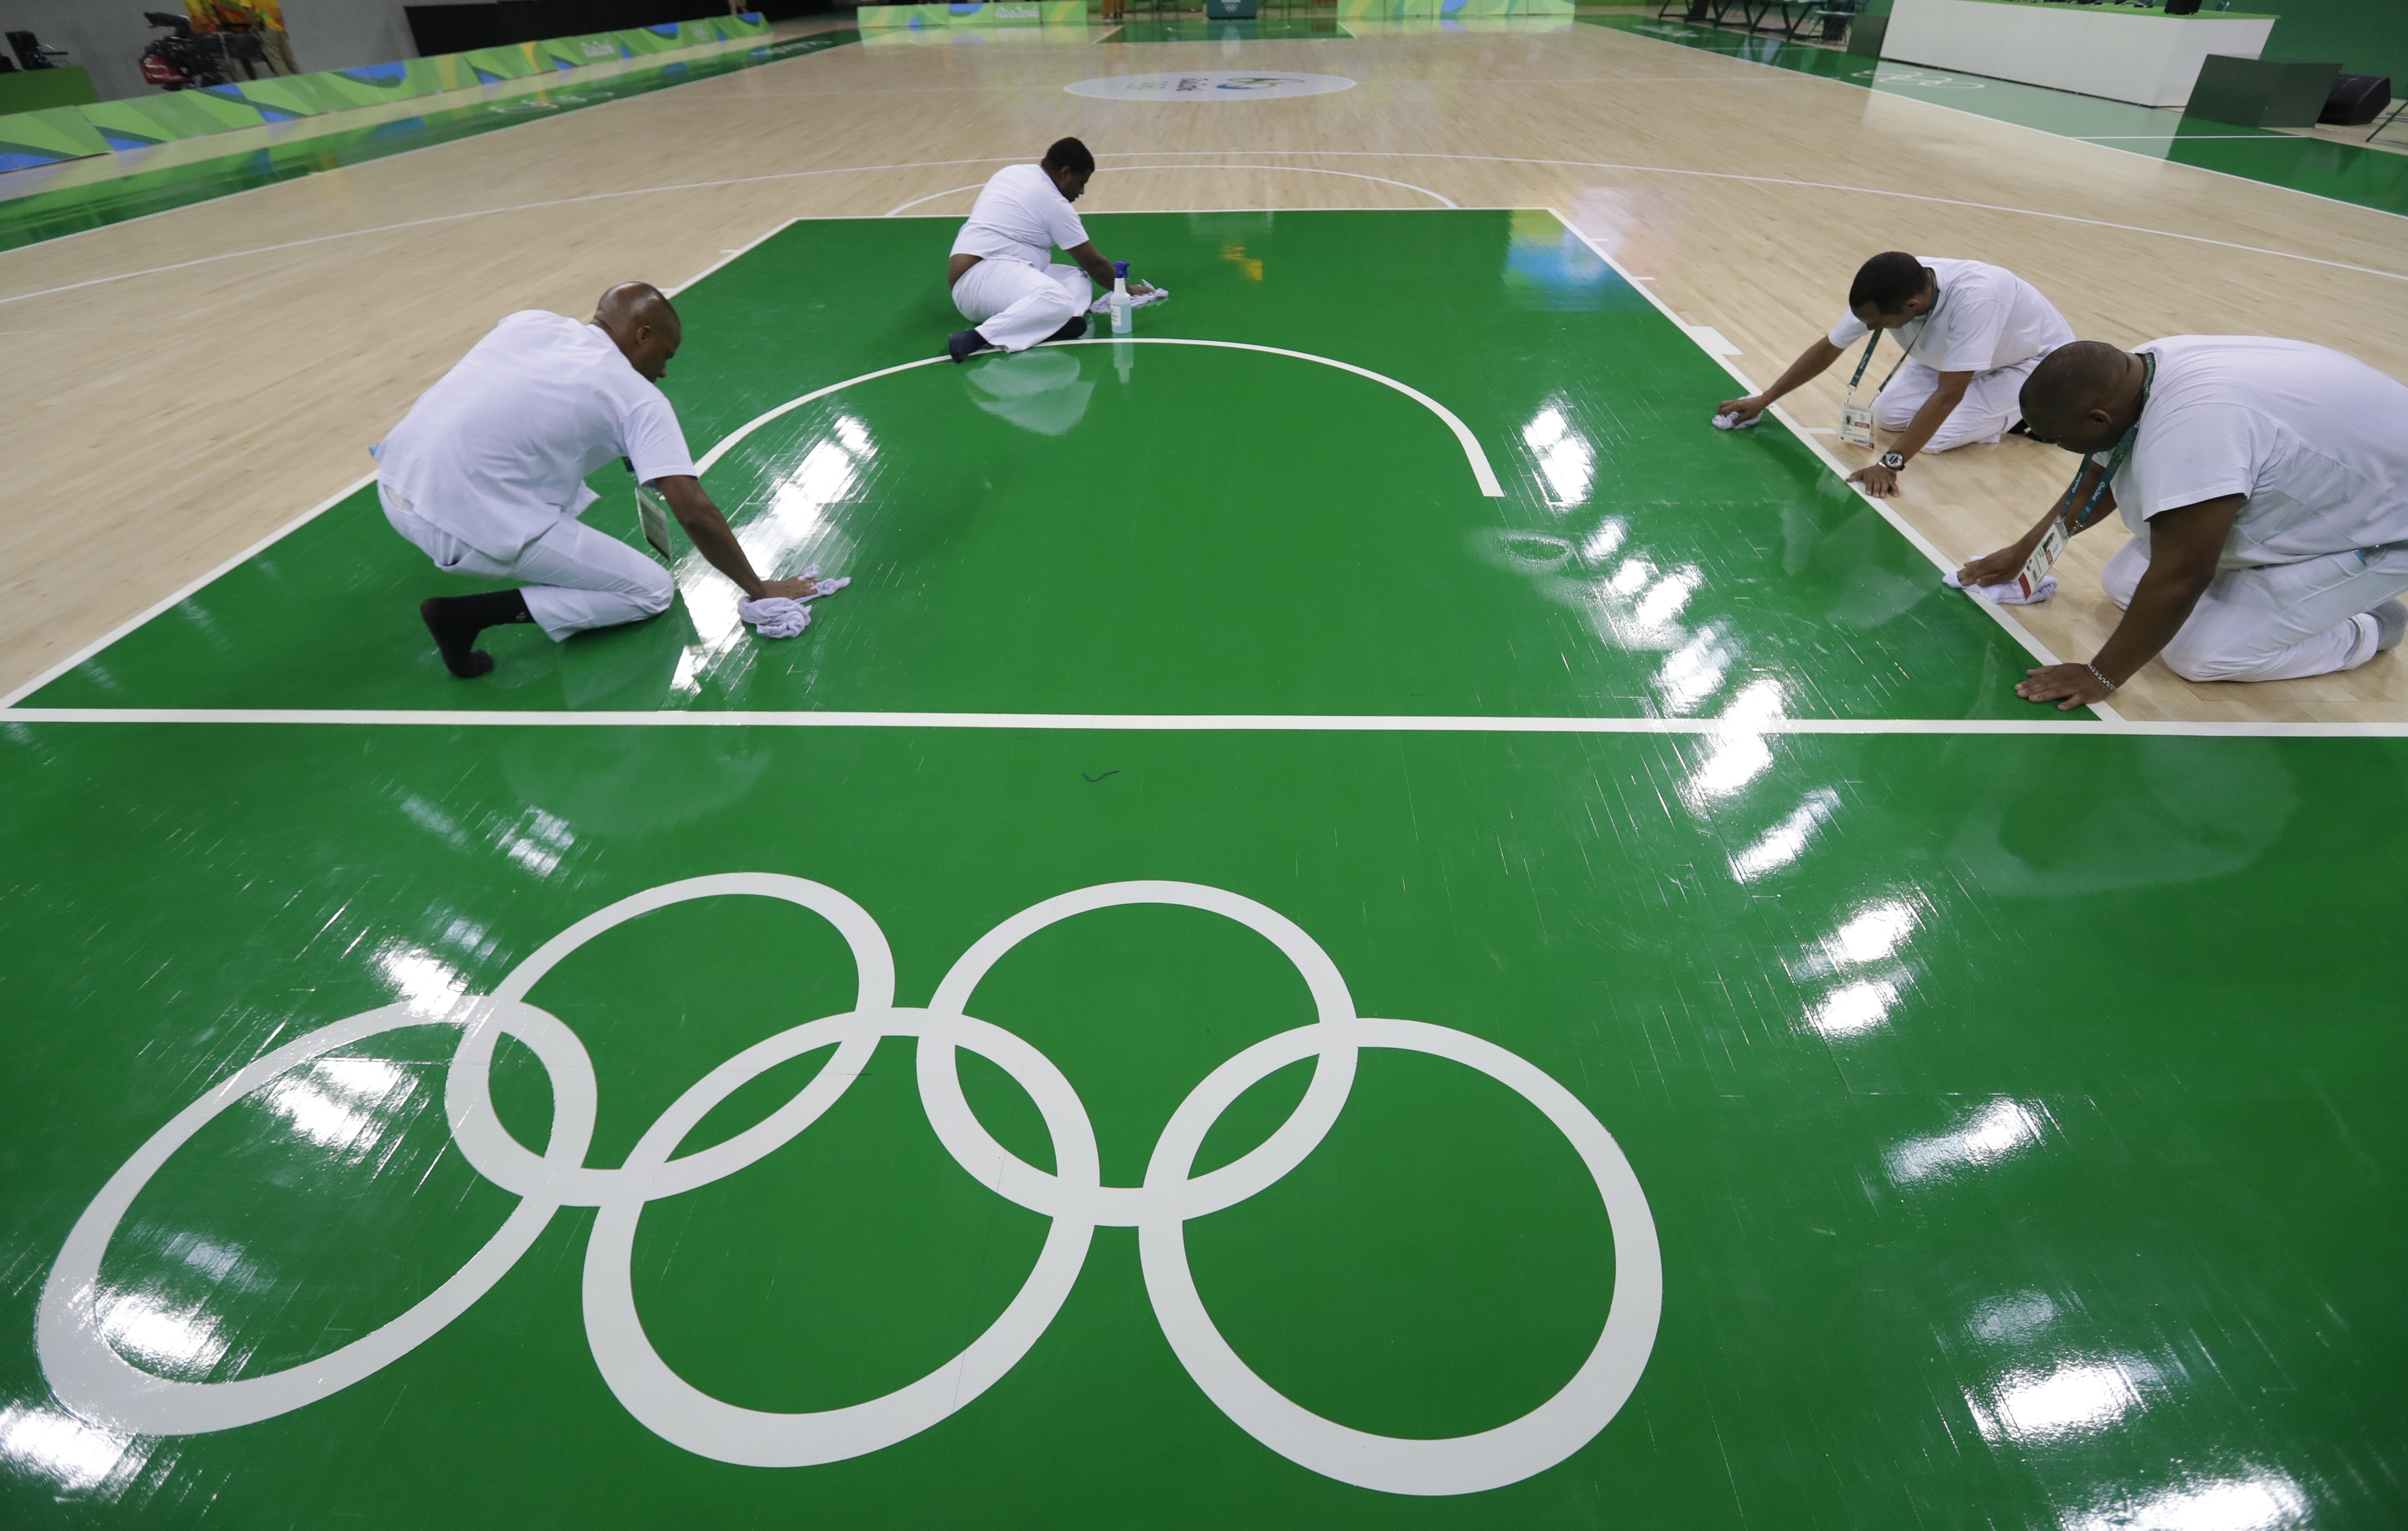 Work crews clean the basketball floor during an off day for women's basketball at the Youth Center at the 2016 Summer Olympics in Rio de Janeiro, Brazil, Friday, Aug. 5, 2016. The women's competition begins on Saturday. (AP Photo/Carlos Osorio)